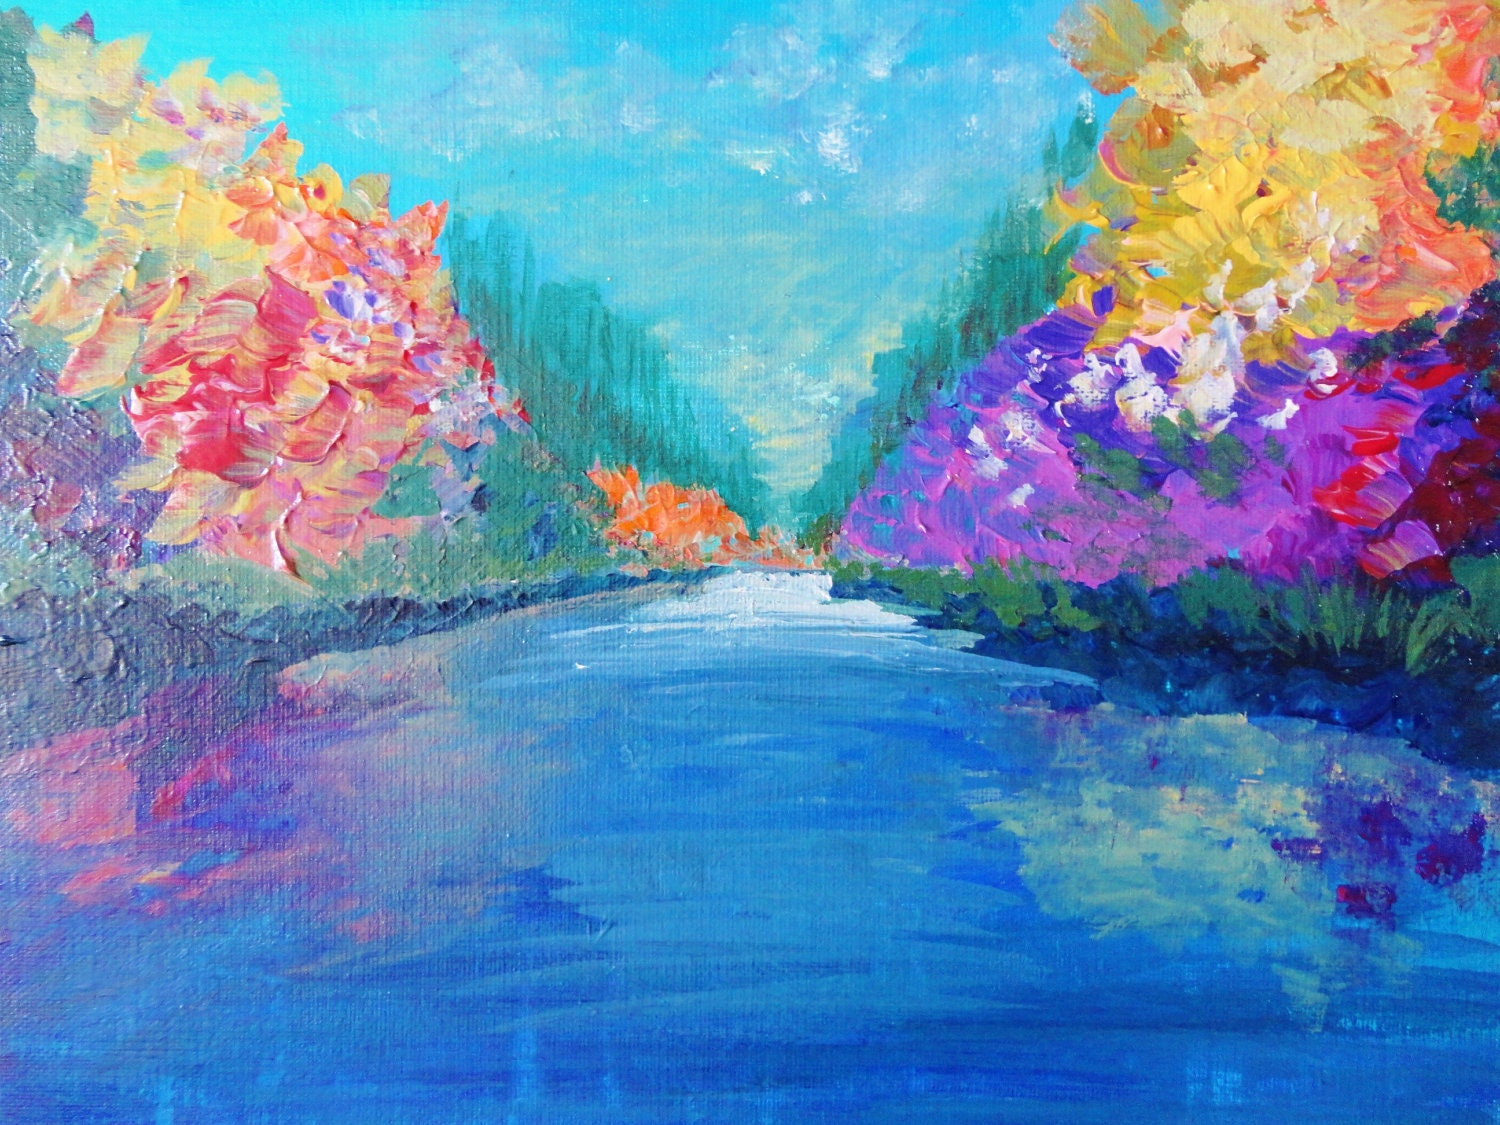 Sale colorful abstract landscape painting free shipping for Abstract nature painting